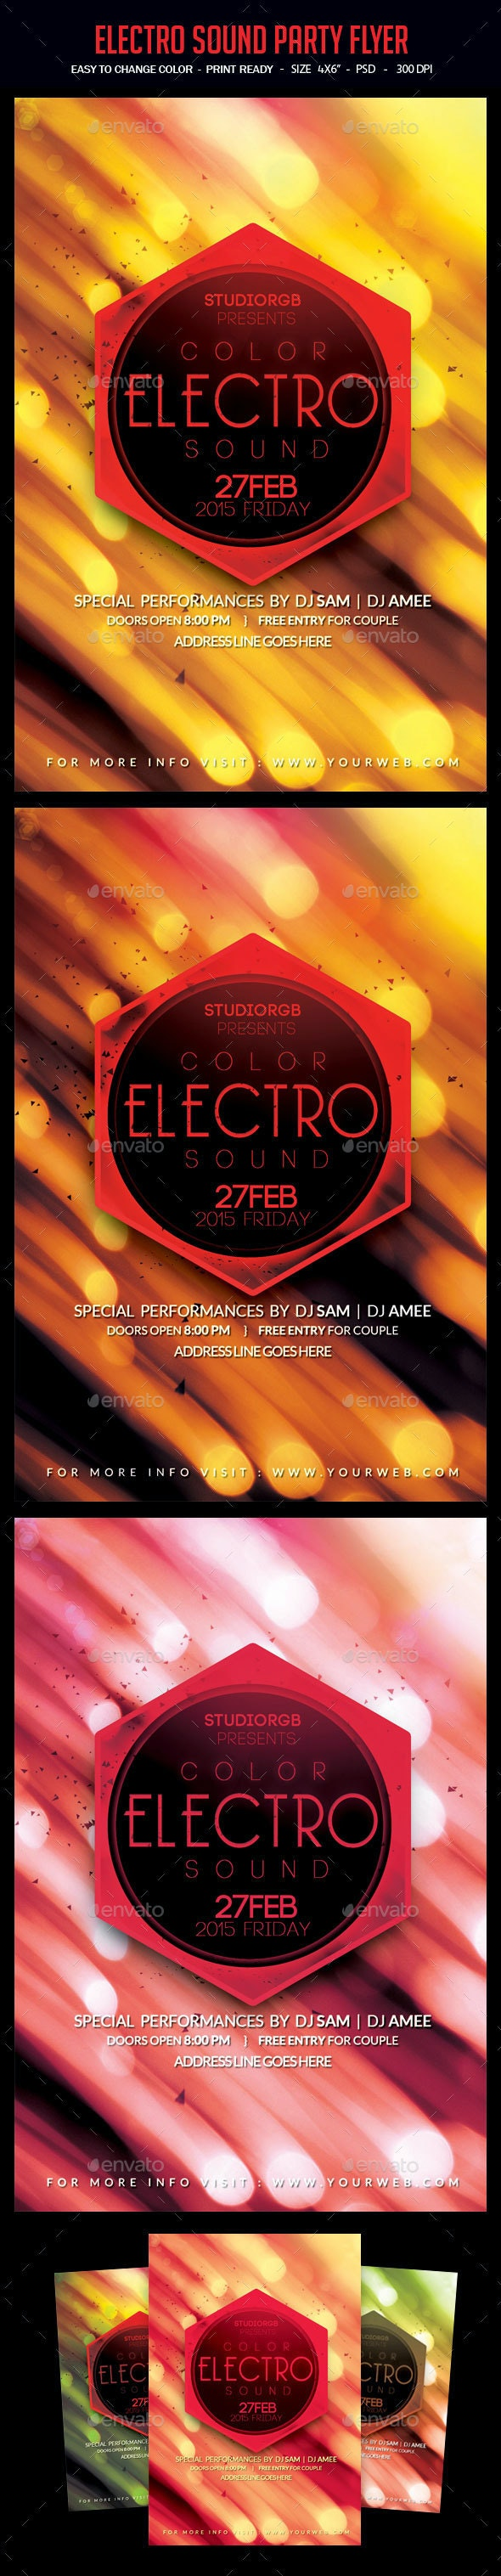 Electro Sound Party Flyer - Clubs & Parties Events